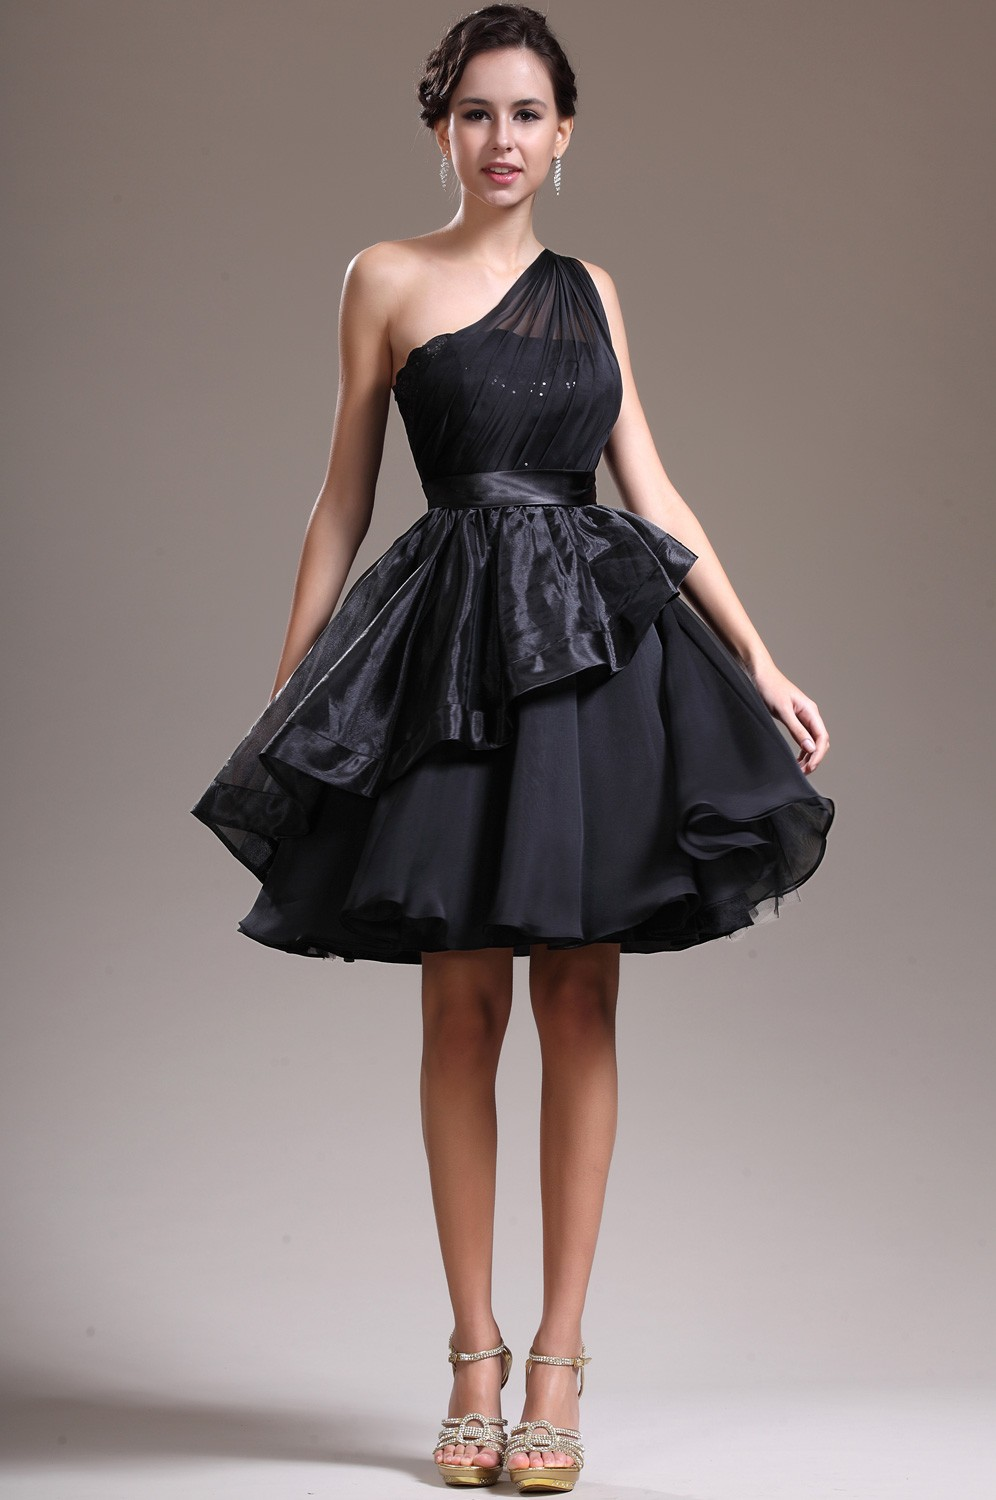 http://ohhmymy.com/wp-content/uploads/2015/12/Black-Cocktail-Dresses-Designs.jpg